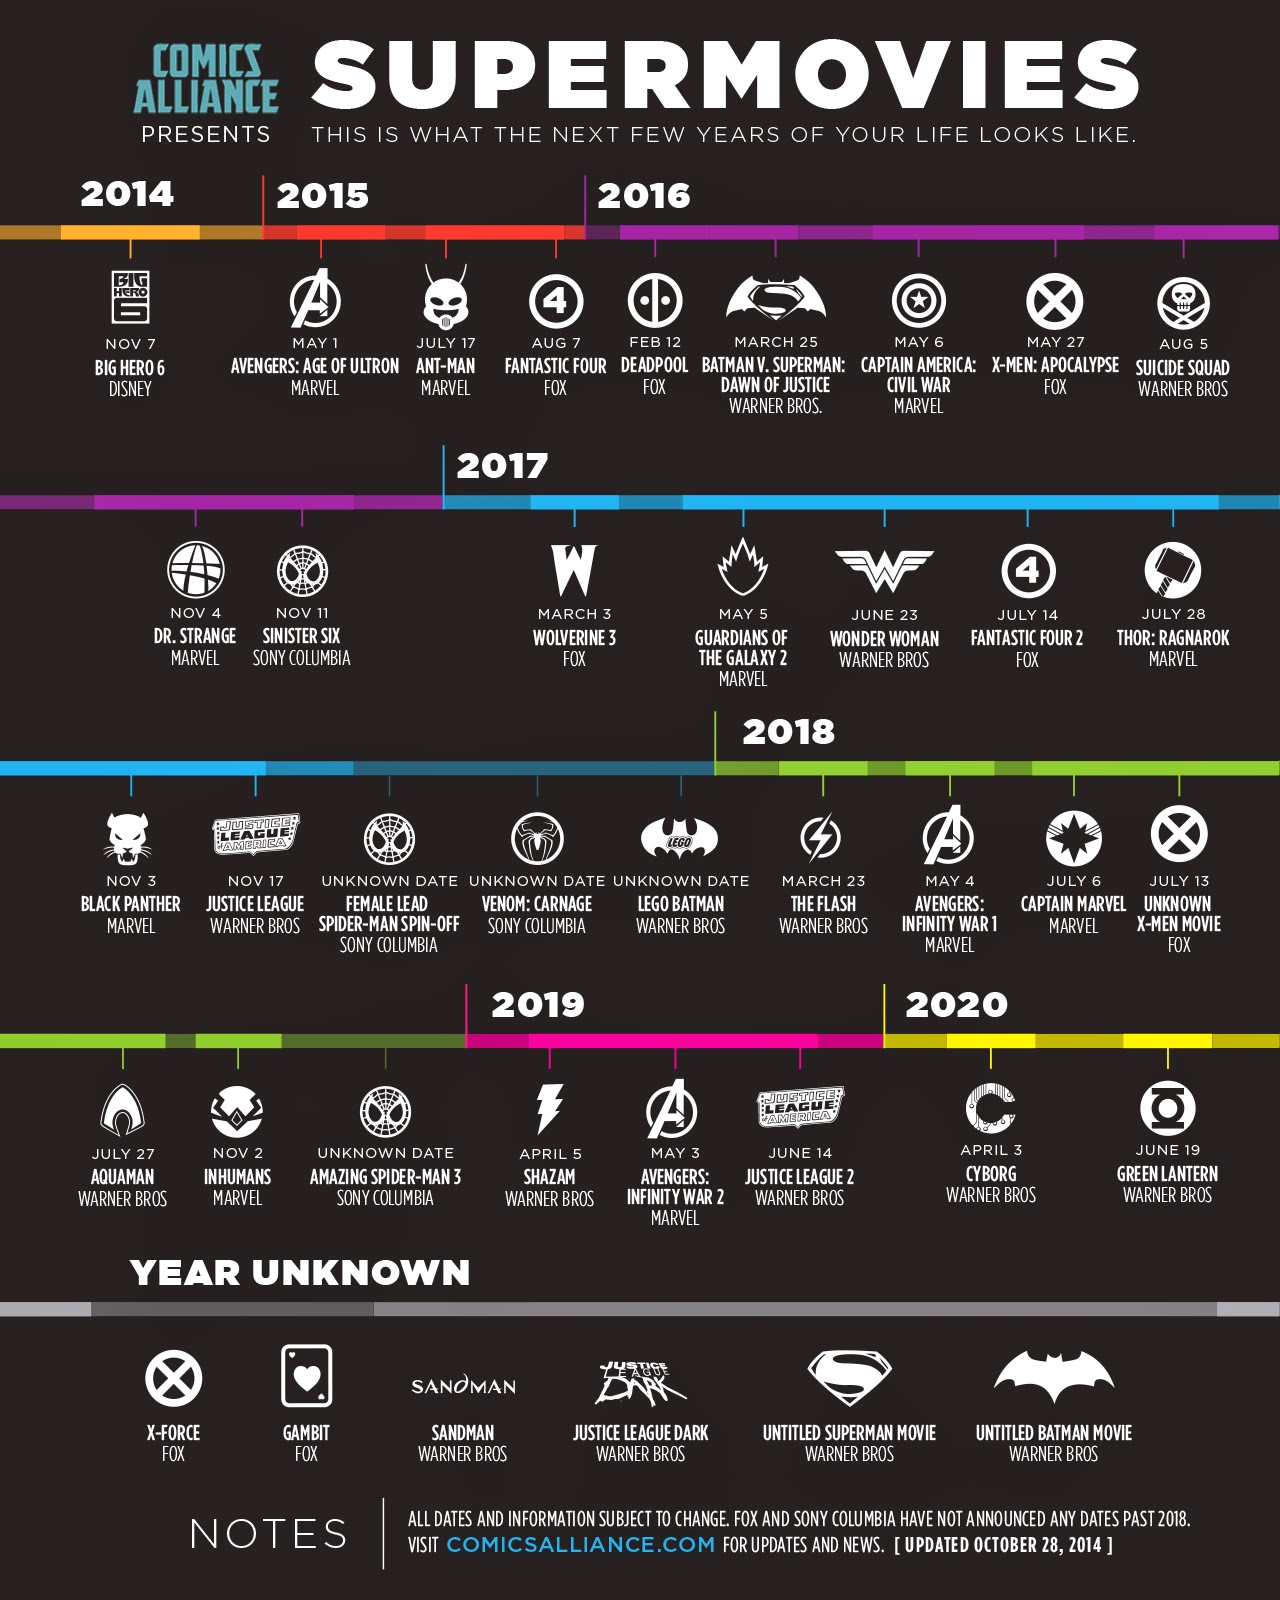 Superhero movies 2014-2020